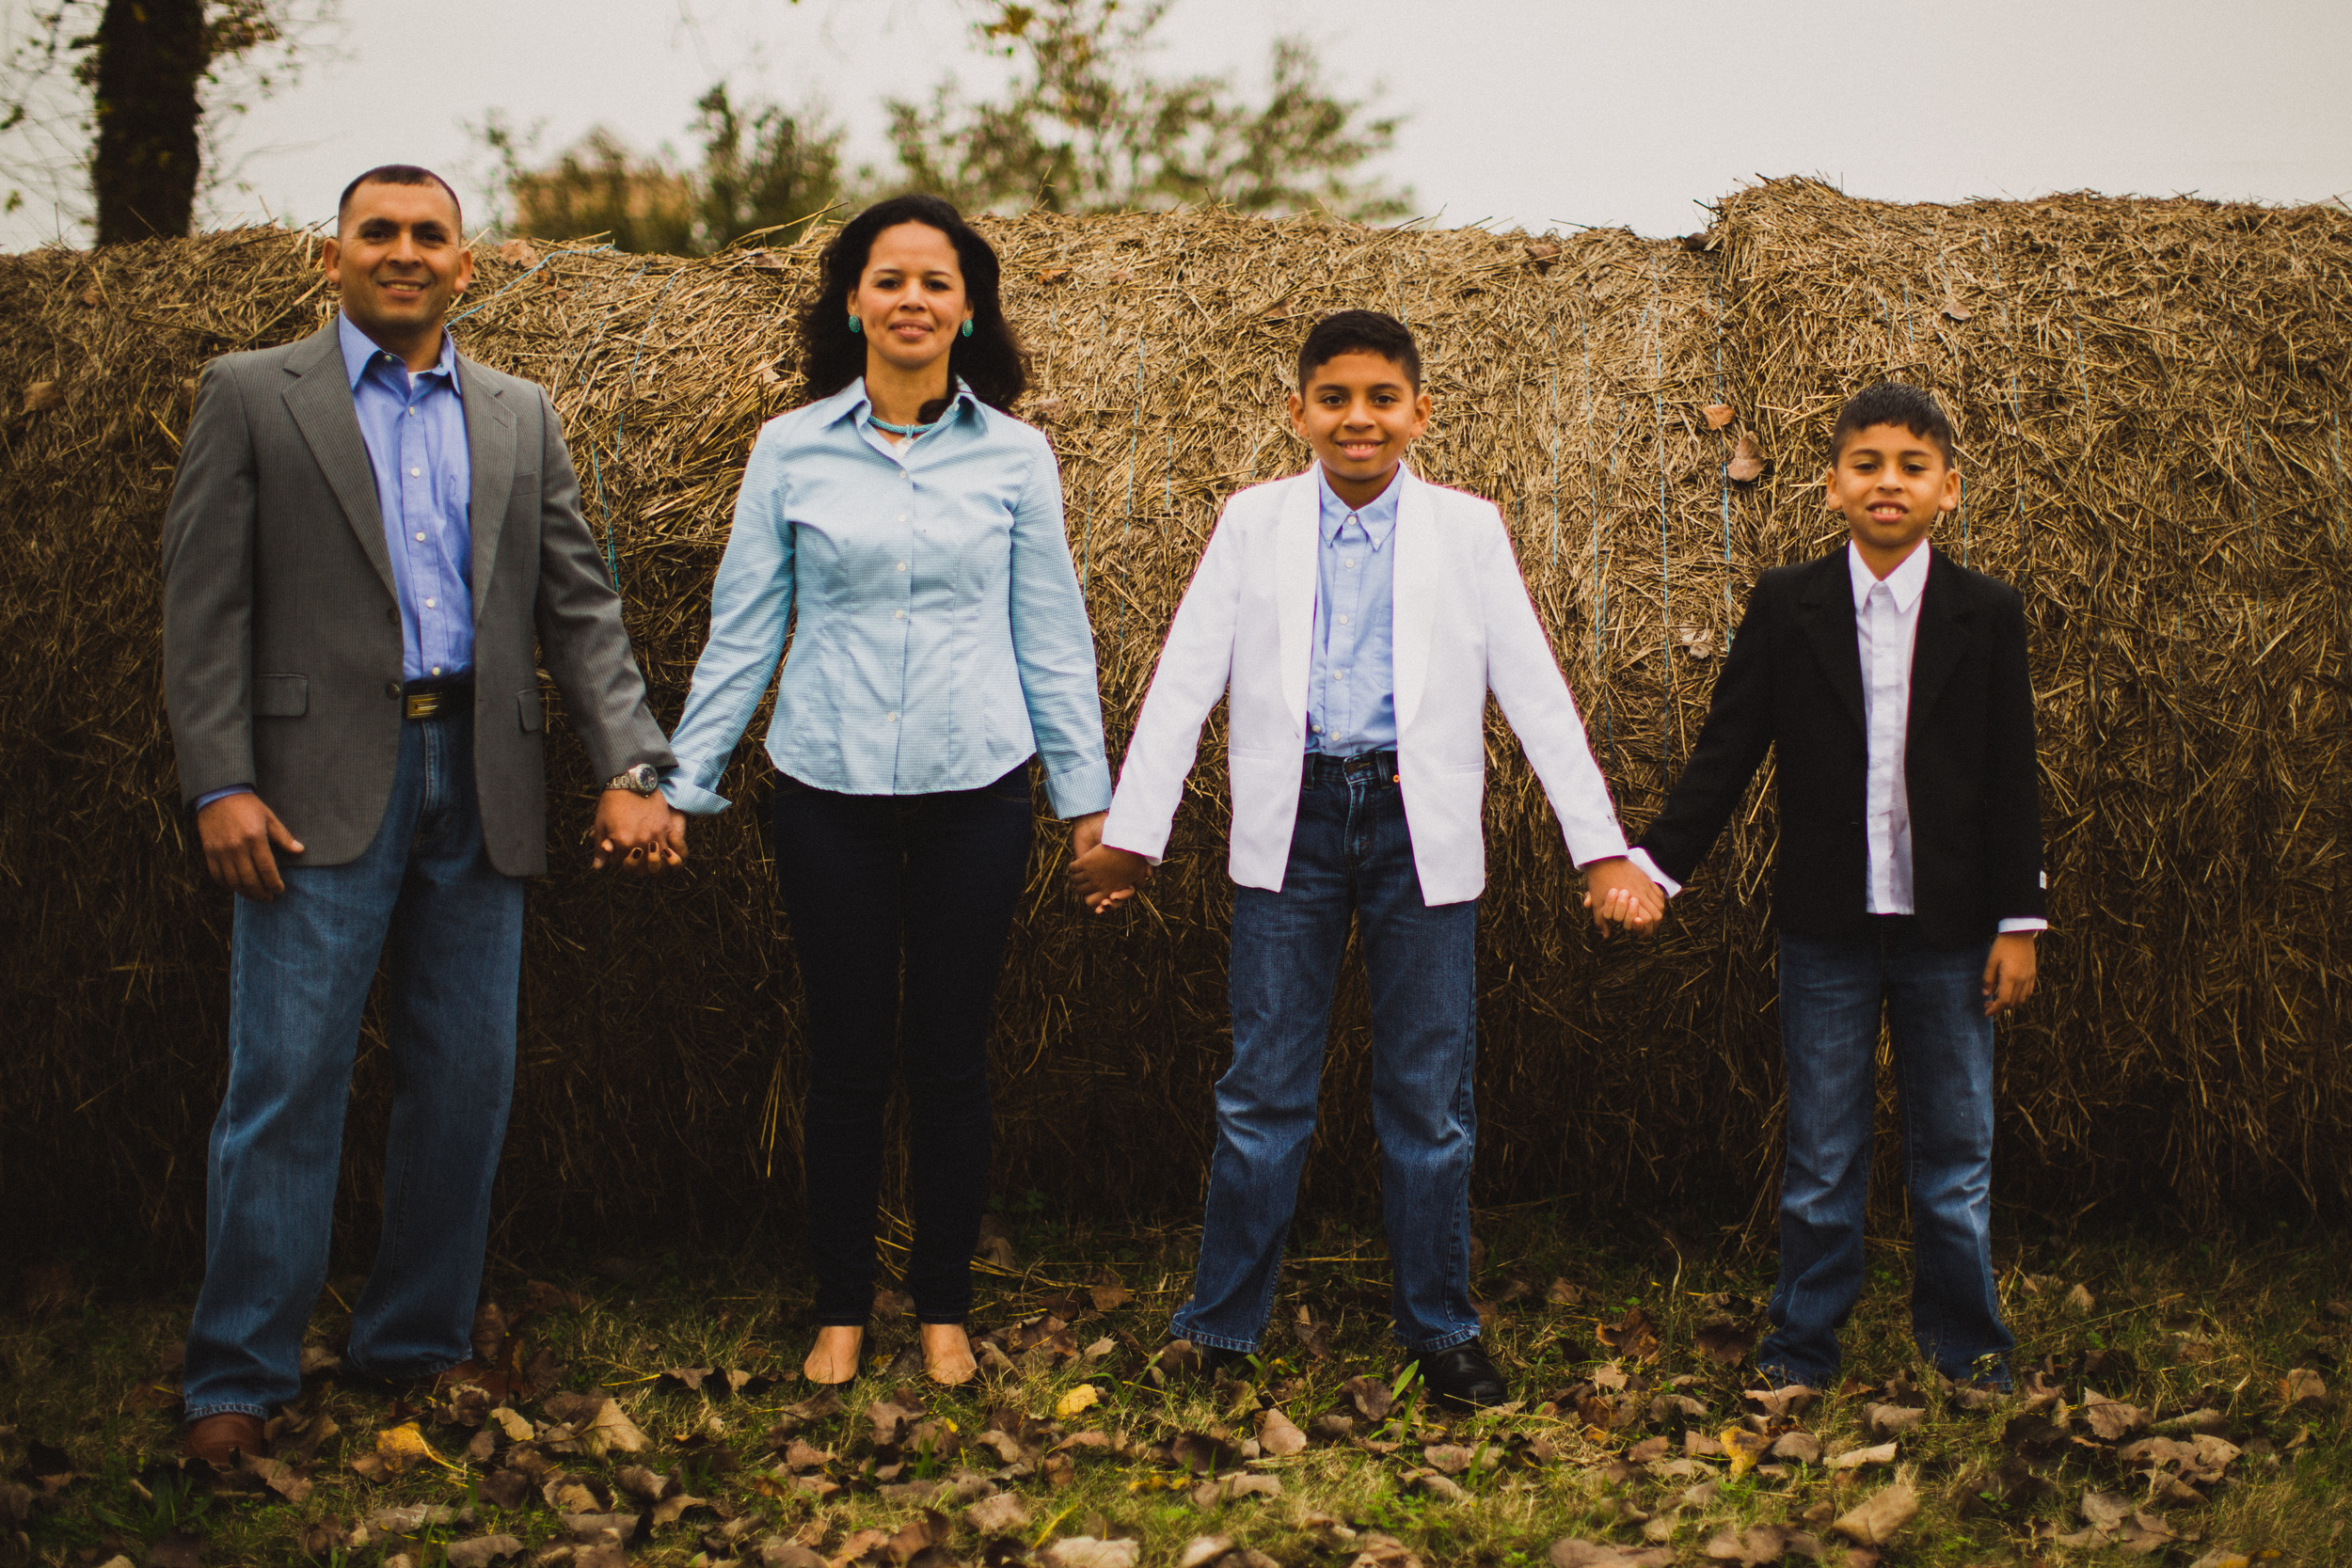 houston family photography_h2014_henriquez-78.jpg